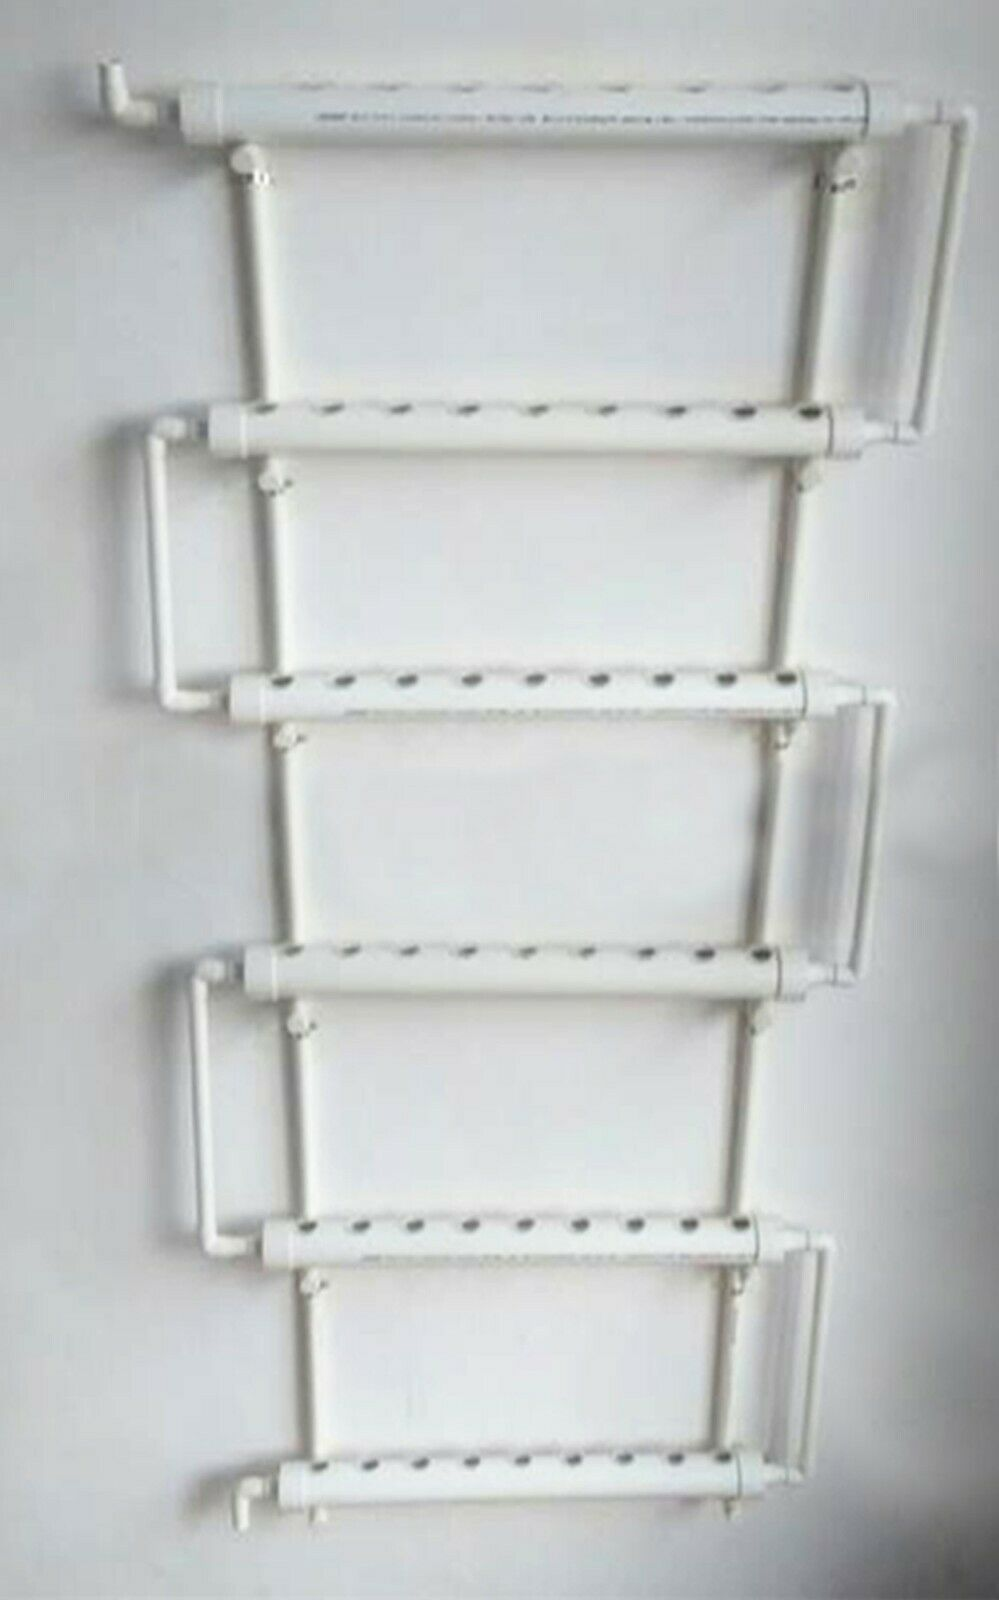 Hydroponic 54 Wall Mounted Plant Growing System now available. Grow Organically